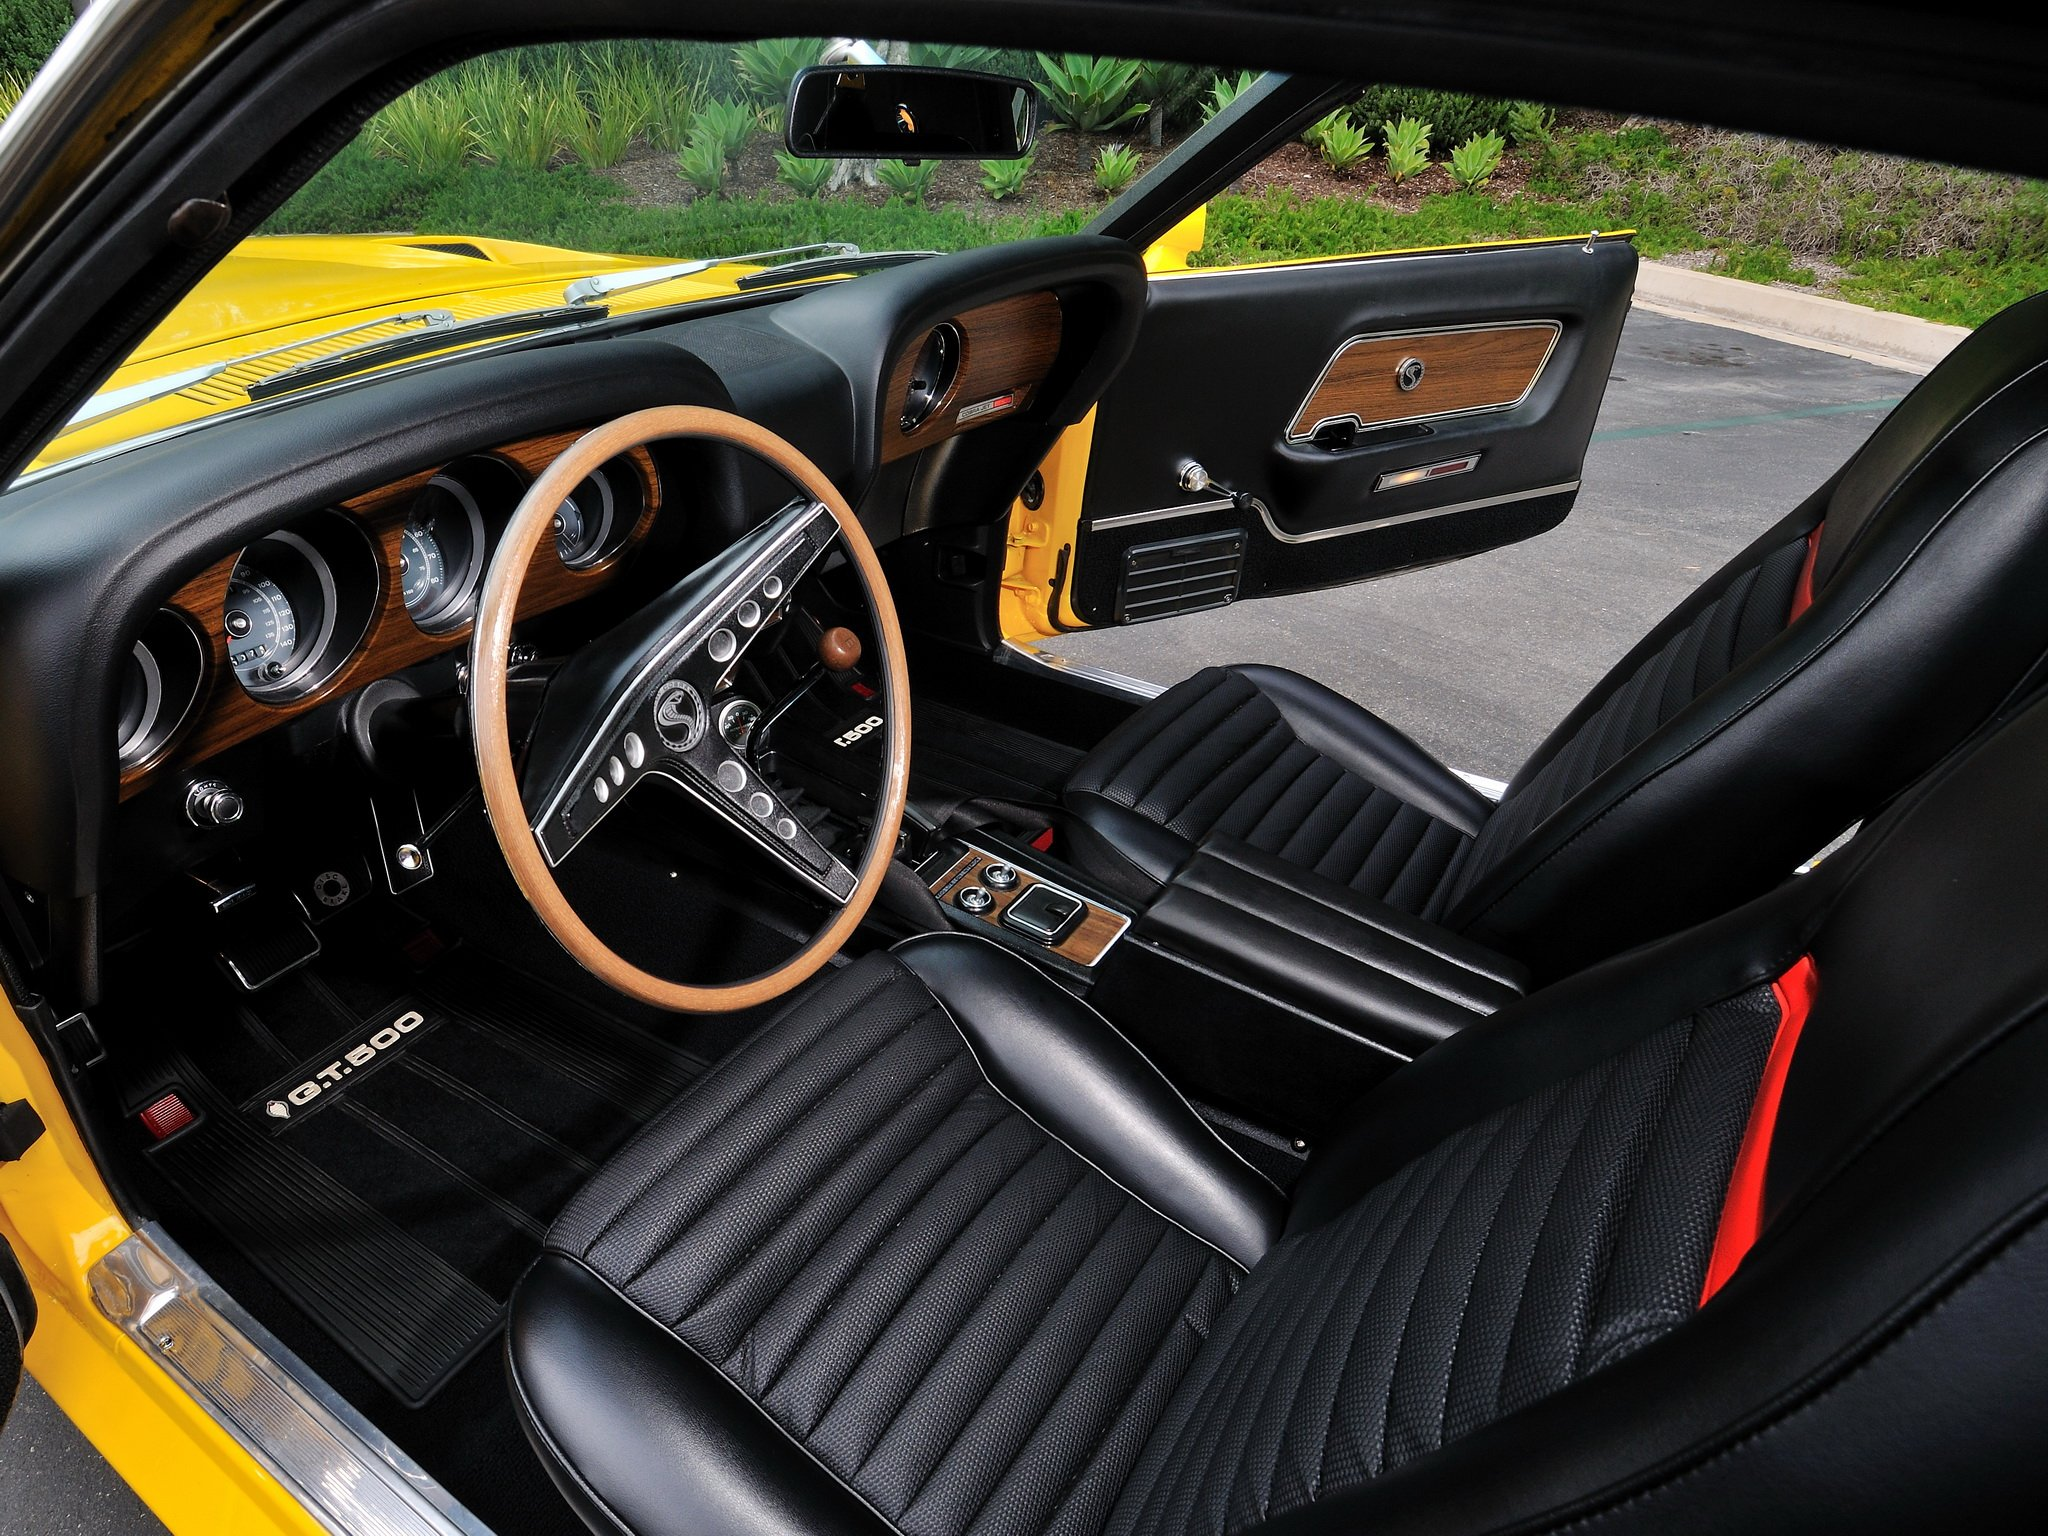 1969 shelby gt500 ford mustang muscle classic interior g wallpaper 2048x1536 287919 wallpaperup - 1969 Ford Mustang Interior